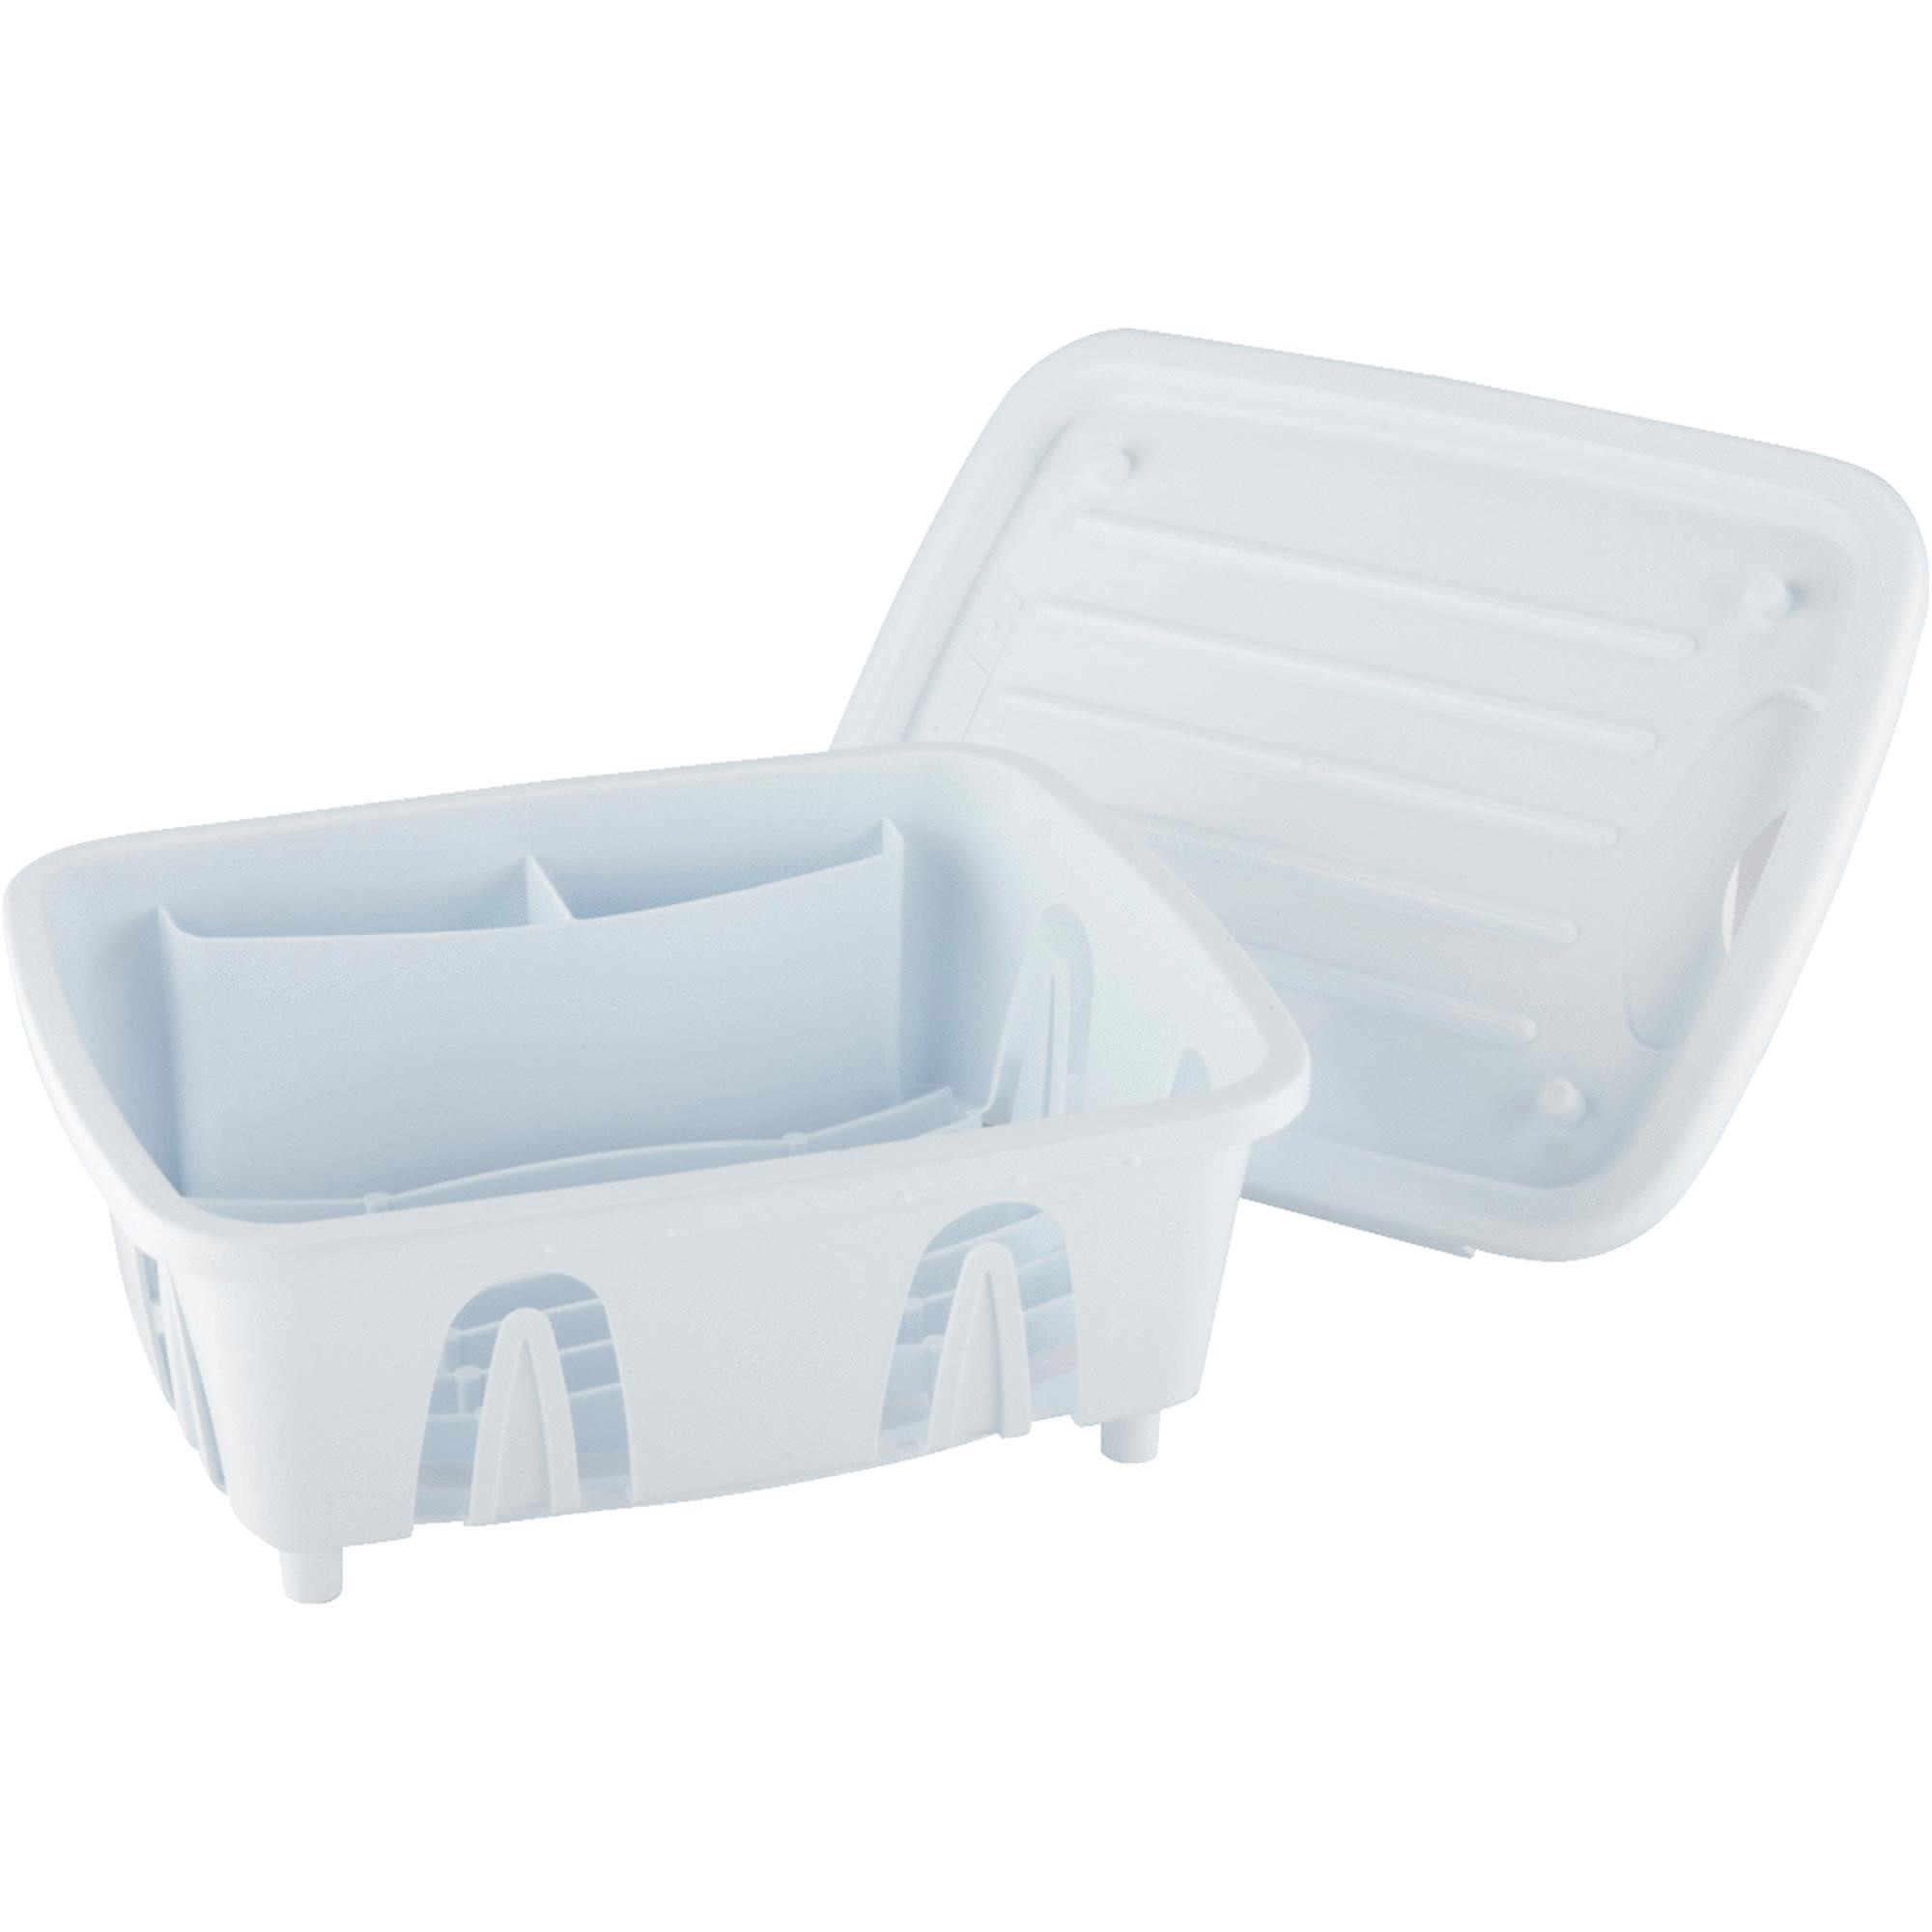 Camco Durable Mini Dish Drainer Rack Tray Perfect RV Sinks, Marine Sinks Compact Kitchen Sinks- White (43511)